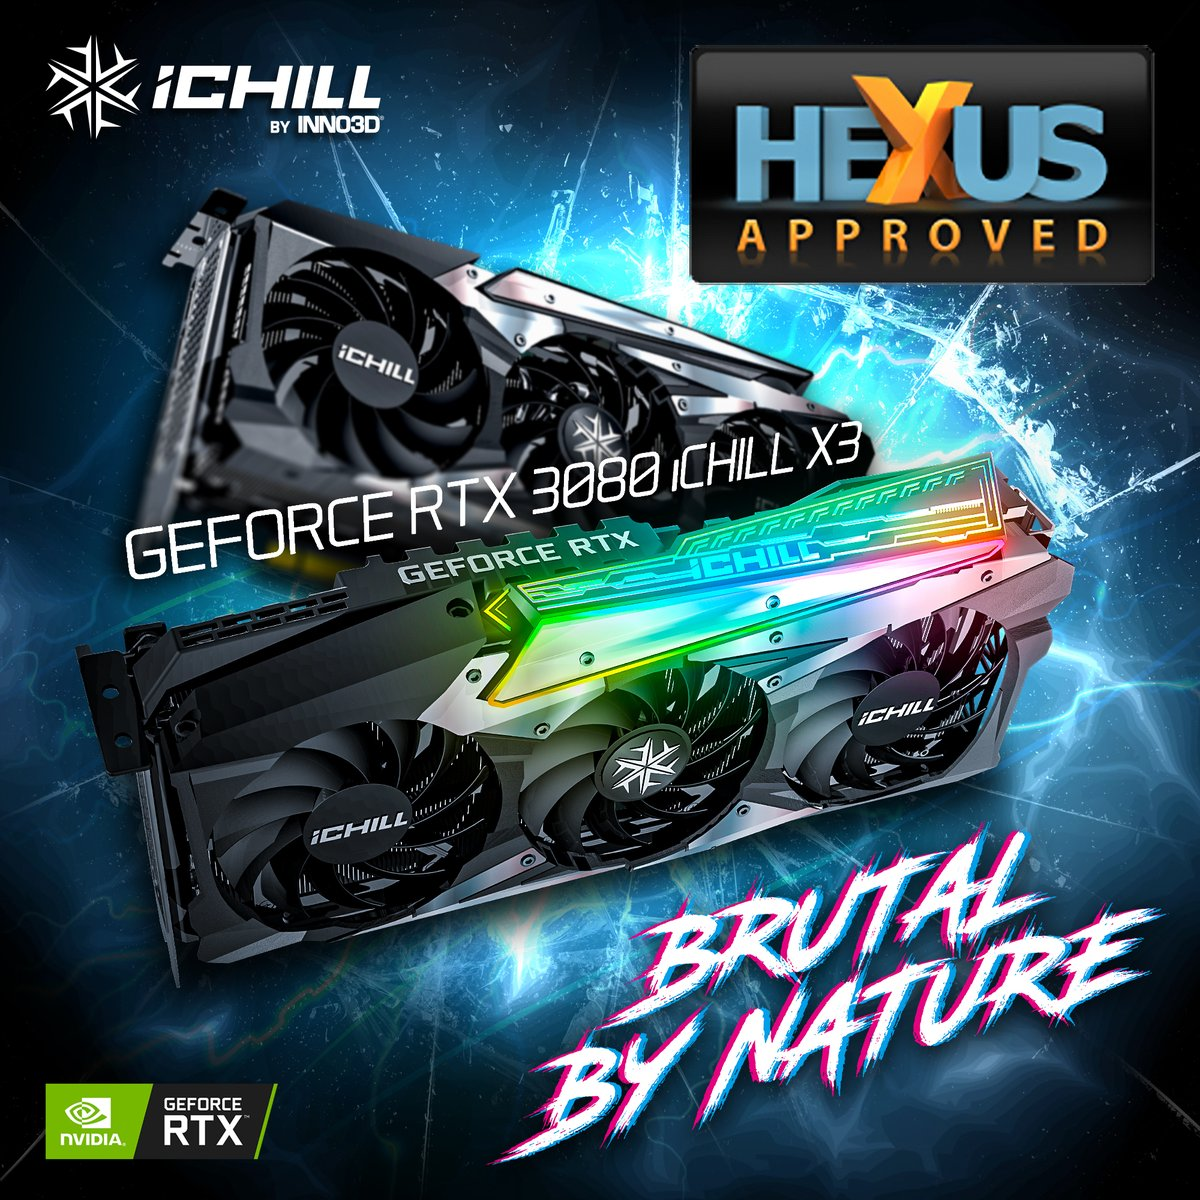 INNO3D GeForce RTX 3080 ICHILL X3 gets 'Approved' Award from Hexus! • Solid build quality • RGB looks good • Good value  #brutalbynature #inno3d #ampere #geforce #rtx #rgb #ichillx3 #ichill #tailfin #award https://t.co/pT6fBTvXk3